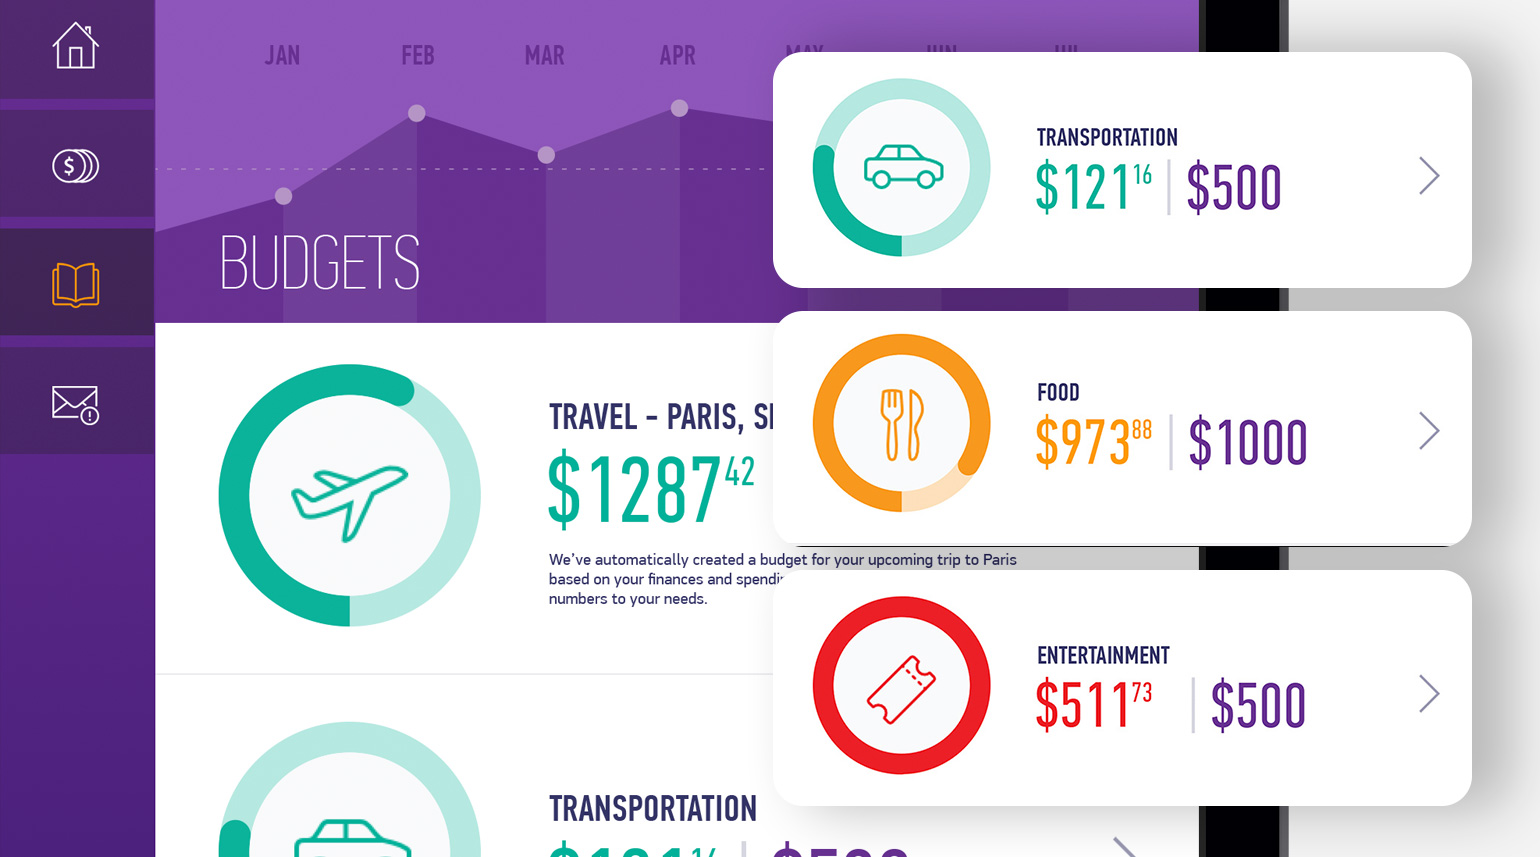 Data visualization and UI components for the the main budget categorizations.